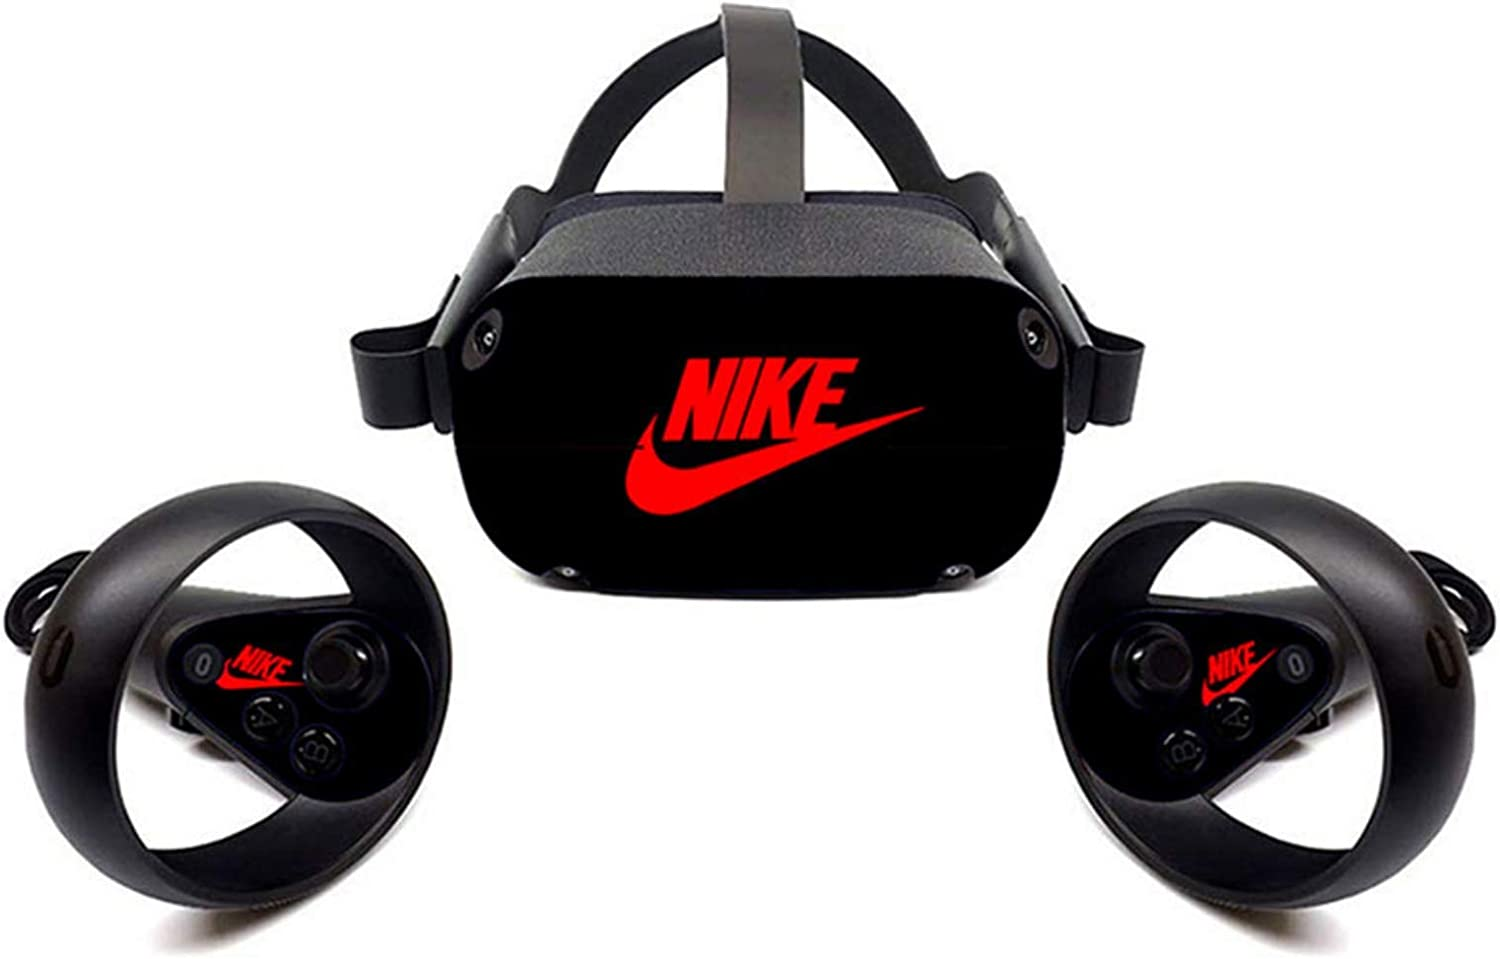 Oculus Quest VR Headset and Controller Sticker, Vinyl Decal Skin for VR Headset and Controller, Virtual Reality Protective Accessories - Black Shoebox